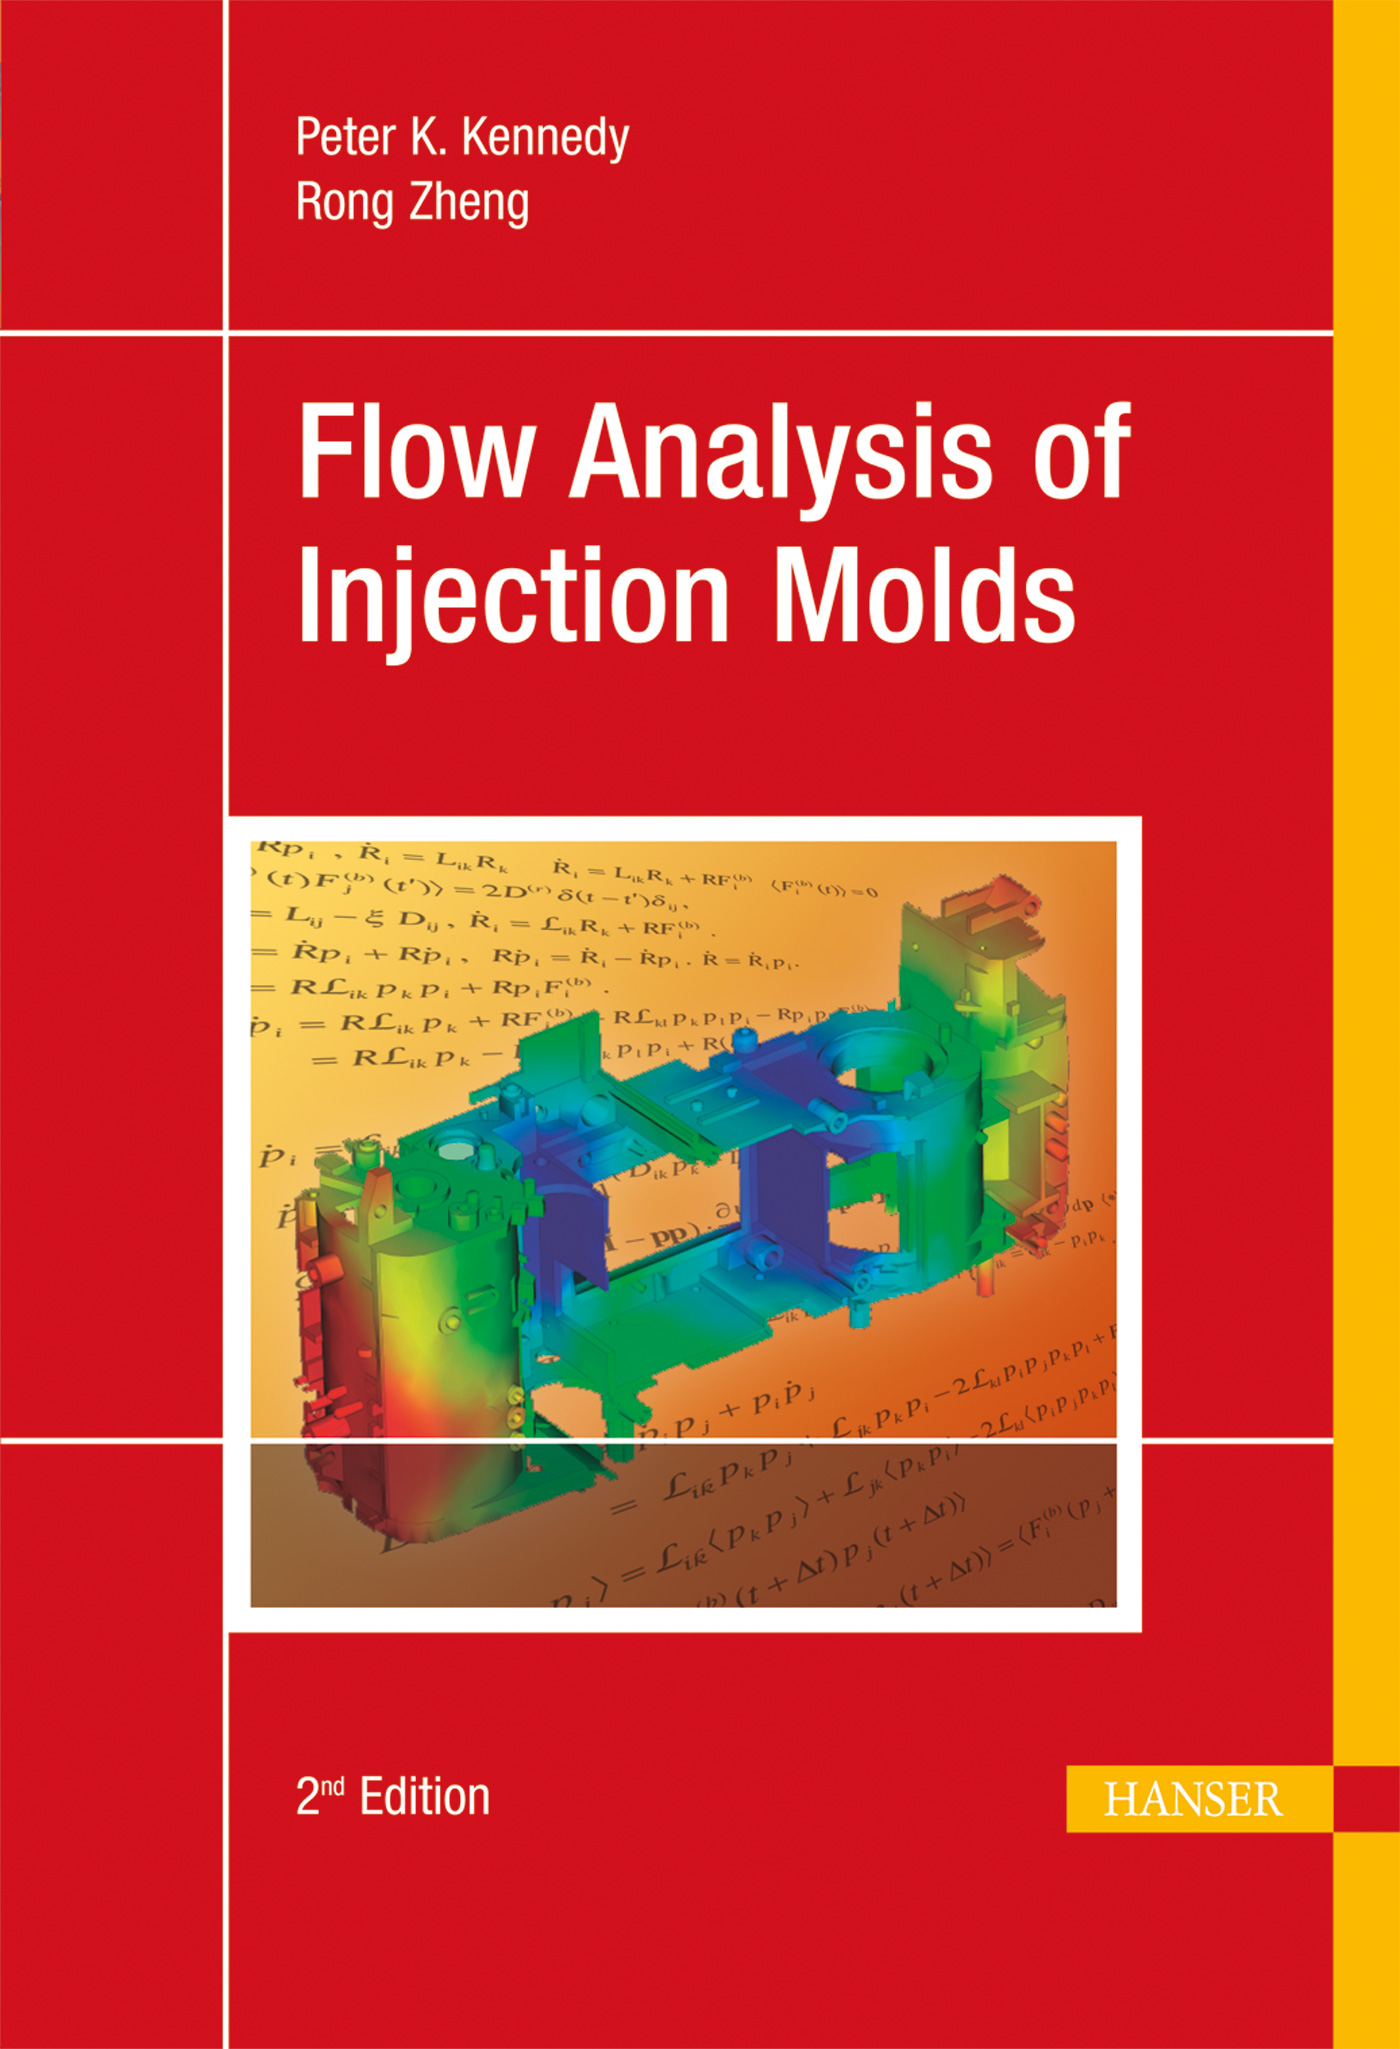 Kennedy, Zheng, Flow Analysis of Injection Molds, 978-1-56990-512-8